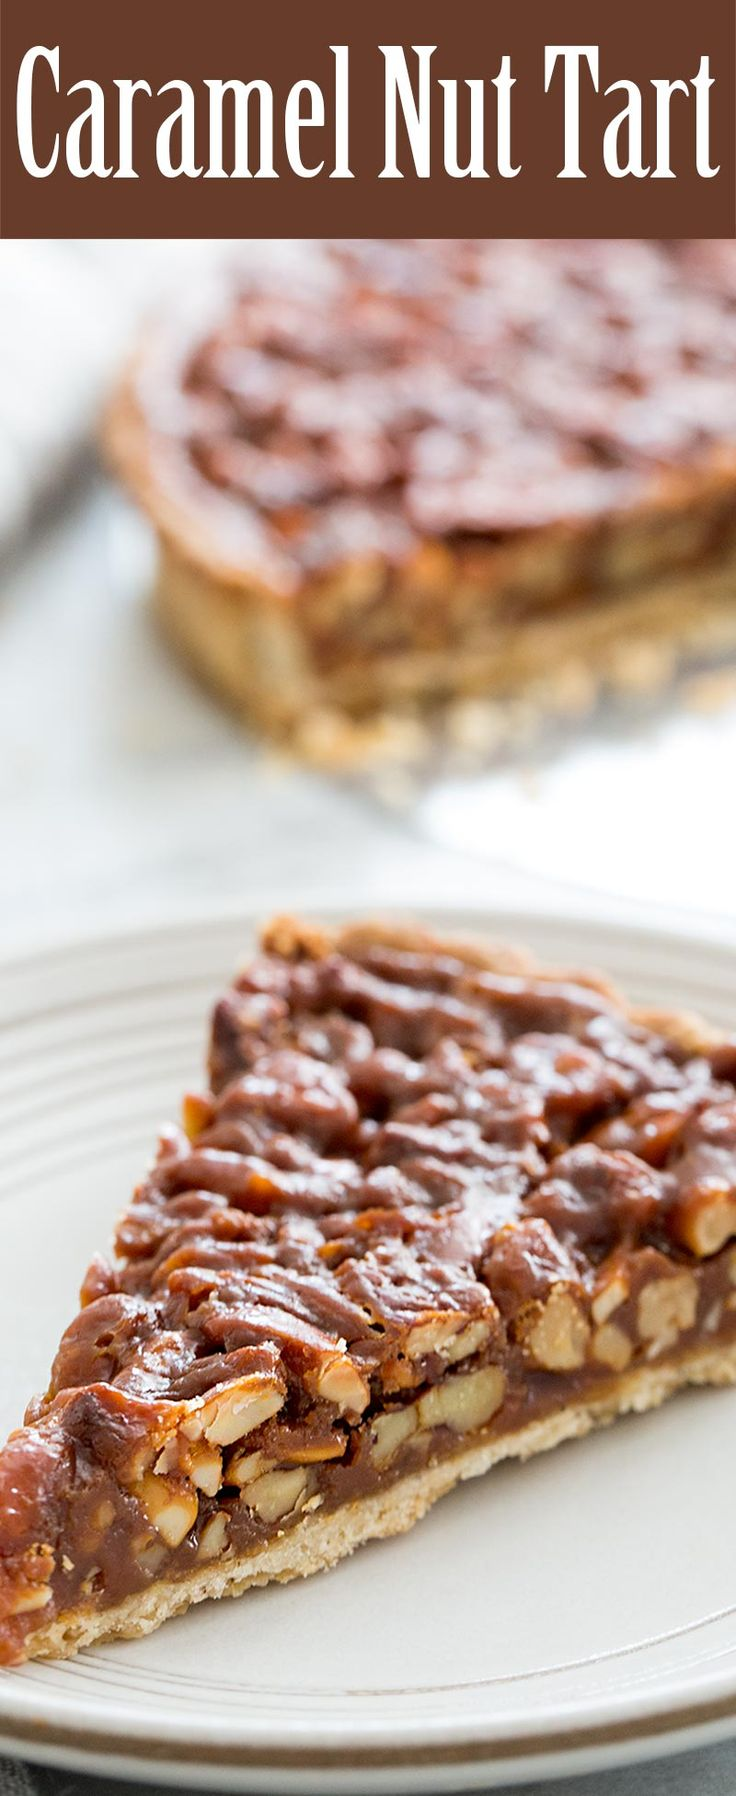 Do you love nuts? This caramel nut tart recipe combines walnuts, pecans, and almonds, in a caramel filling, served in a buttery crust.